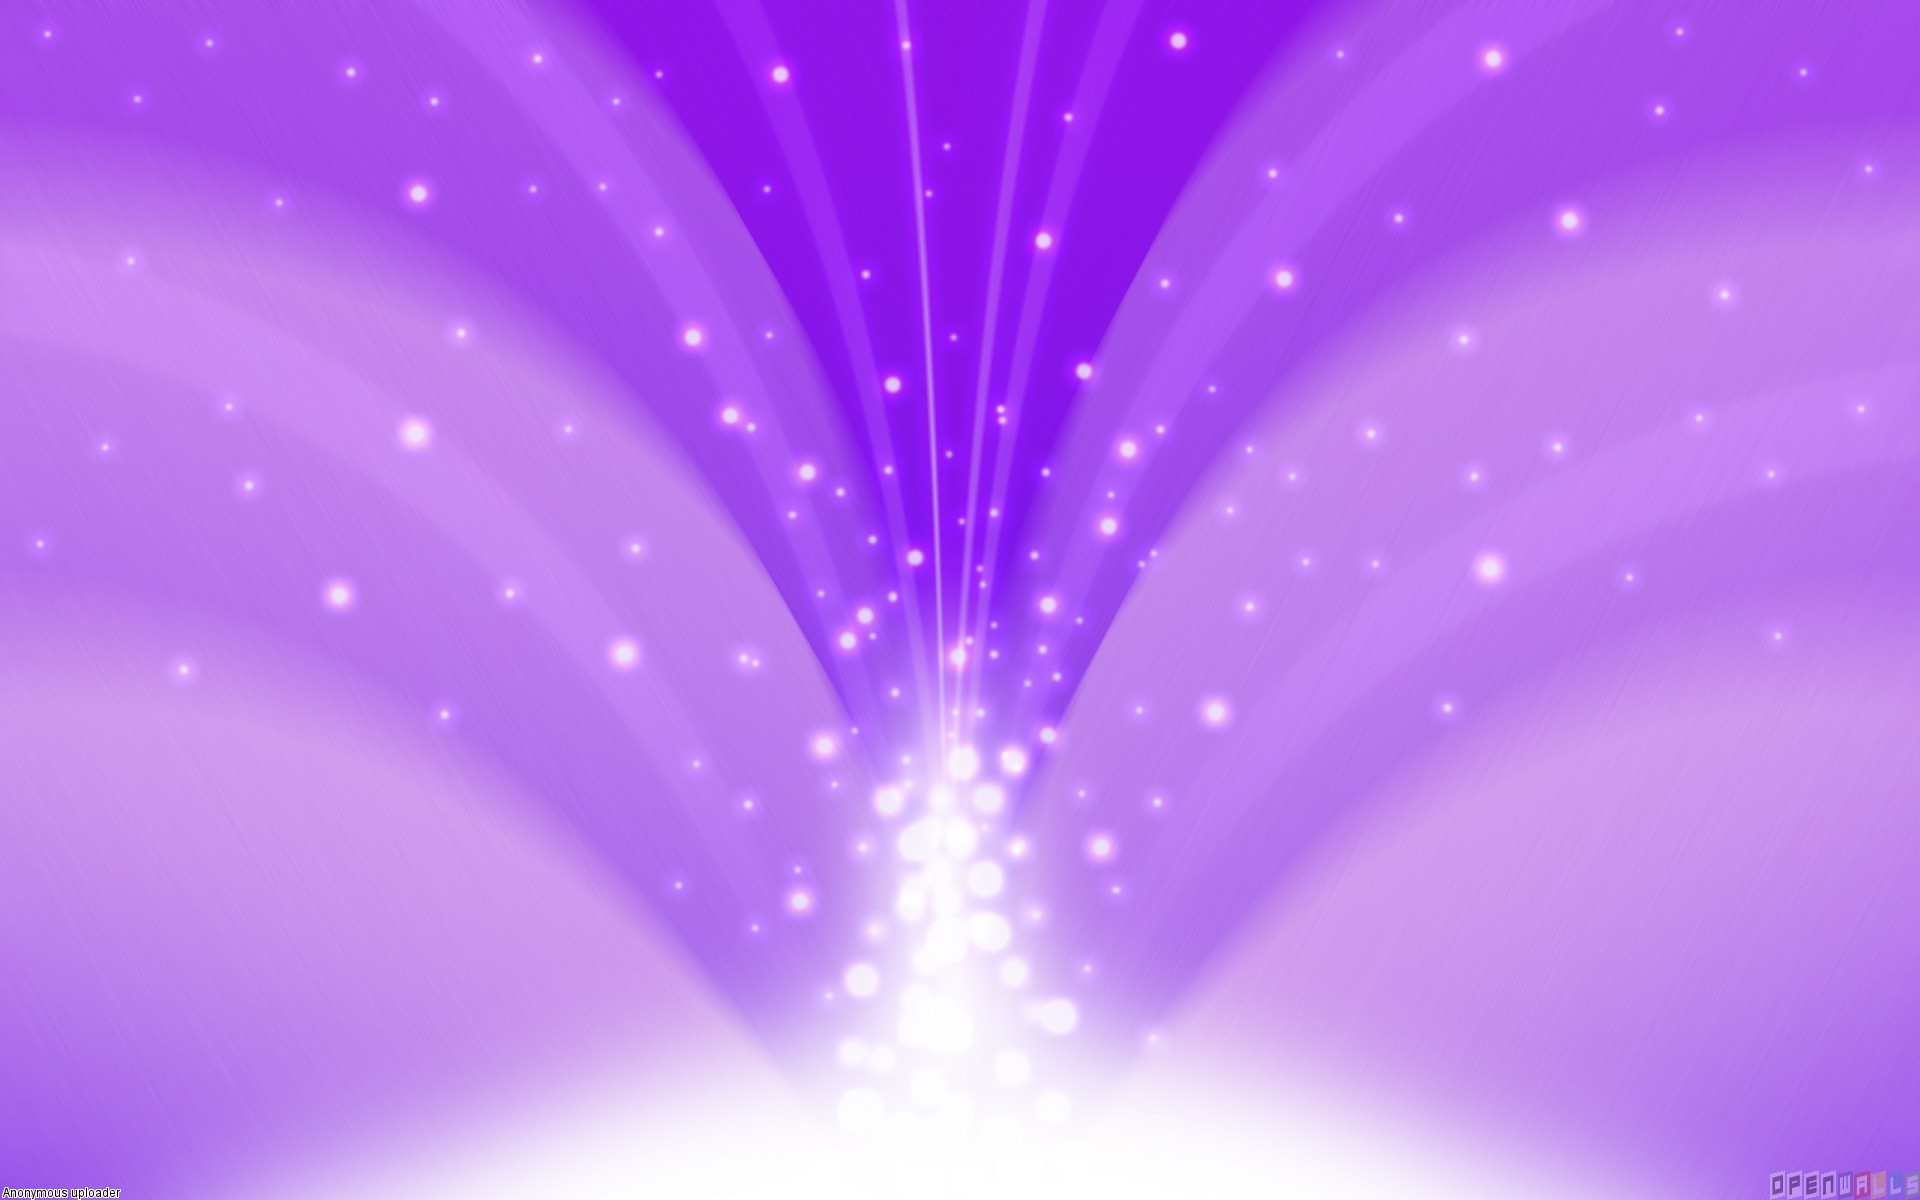 high-quality purple background